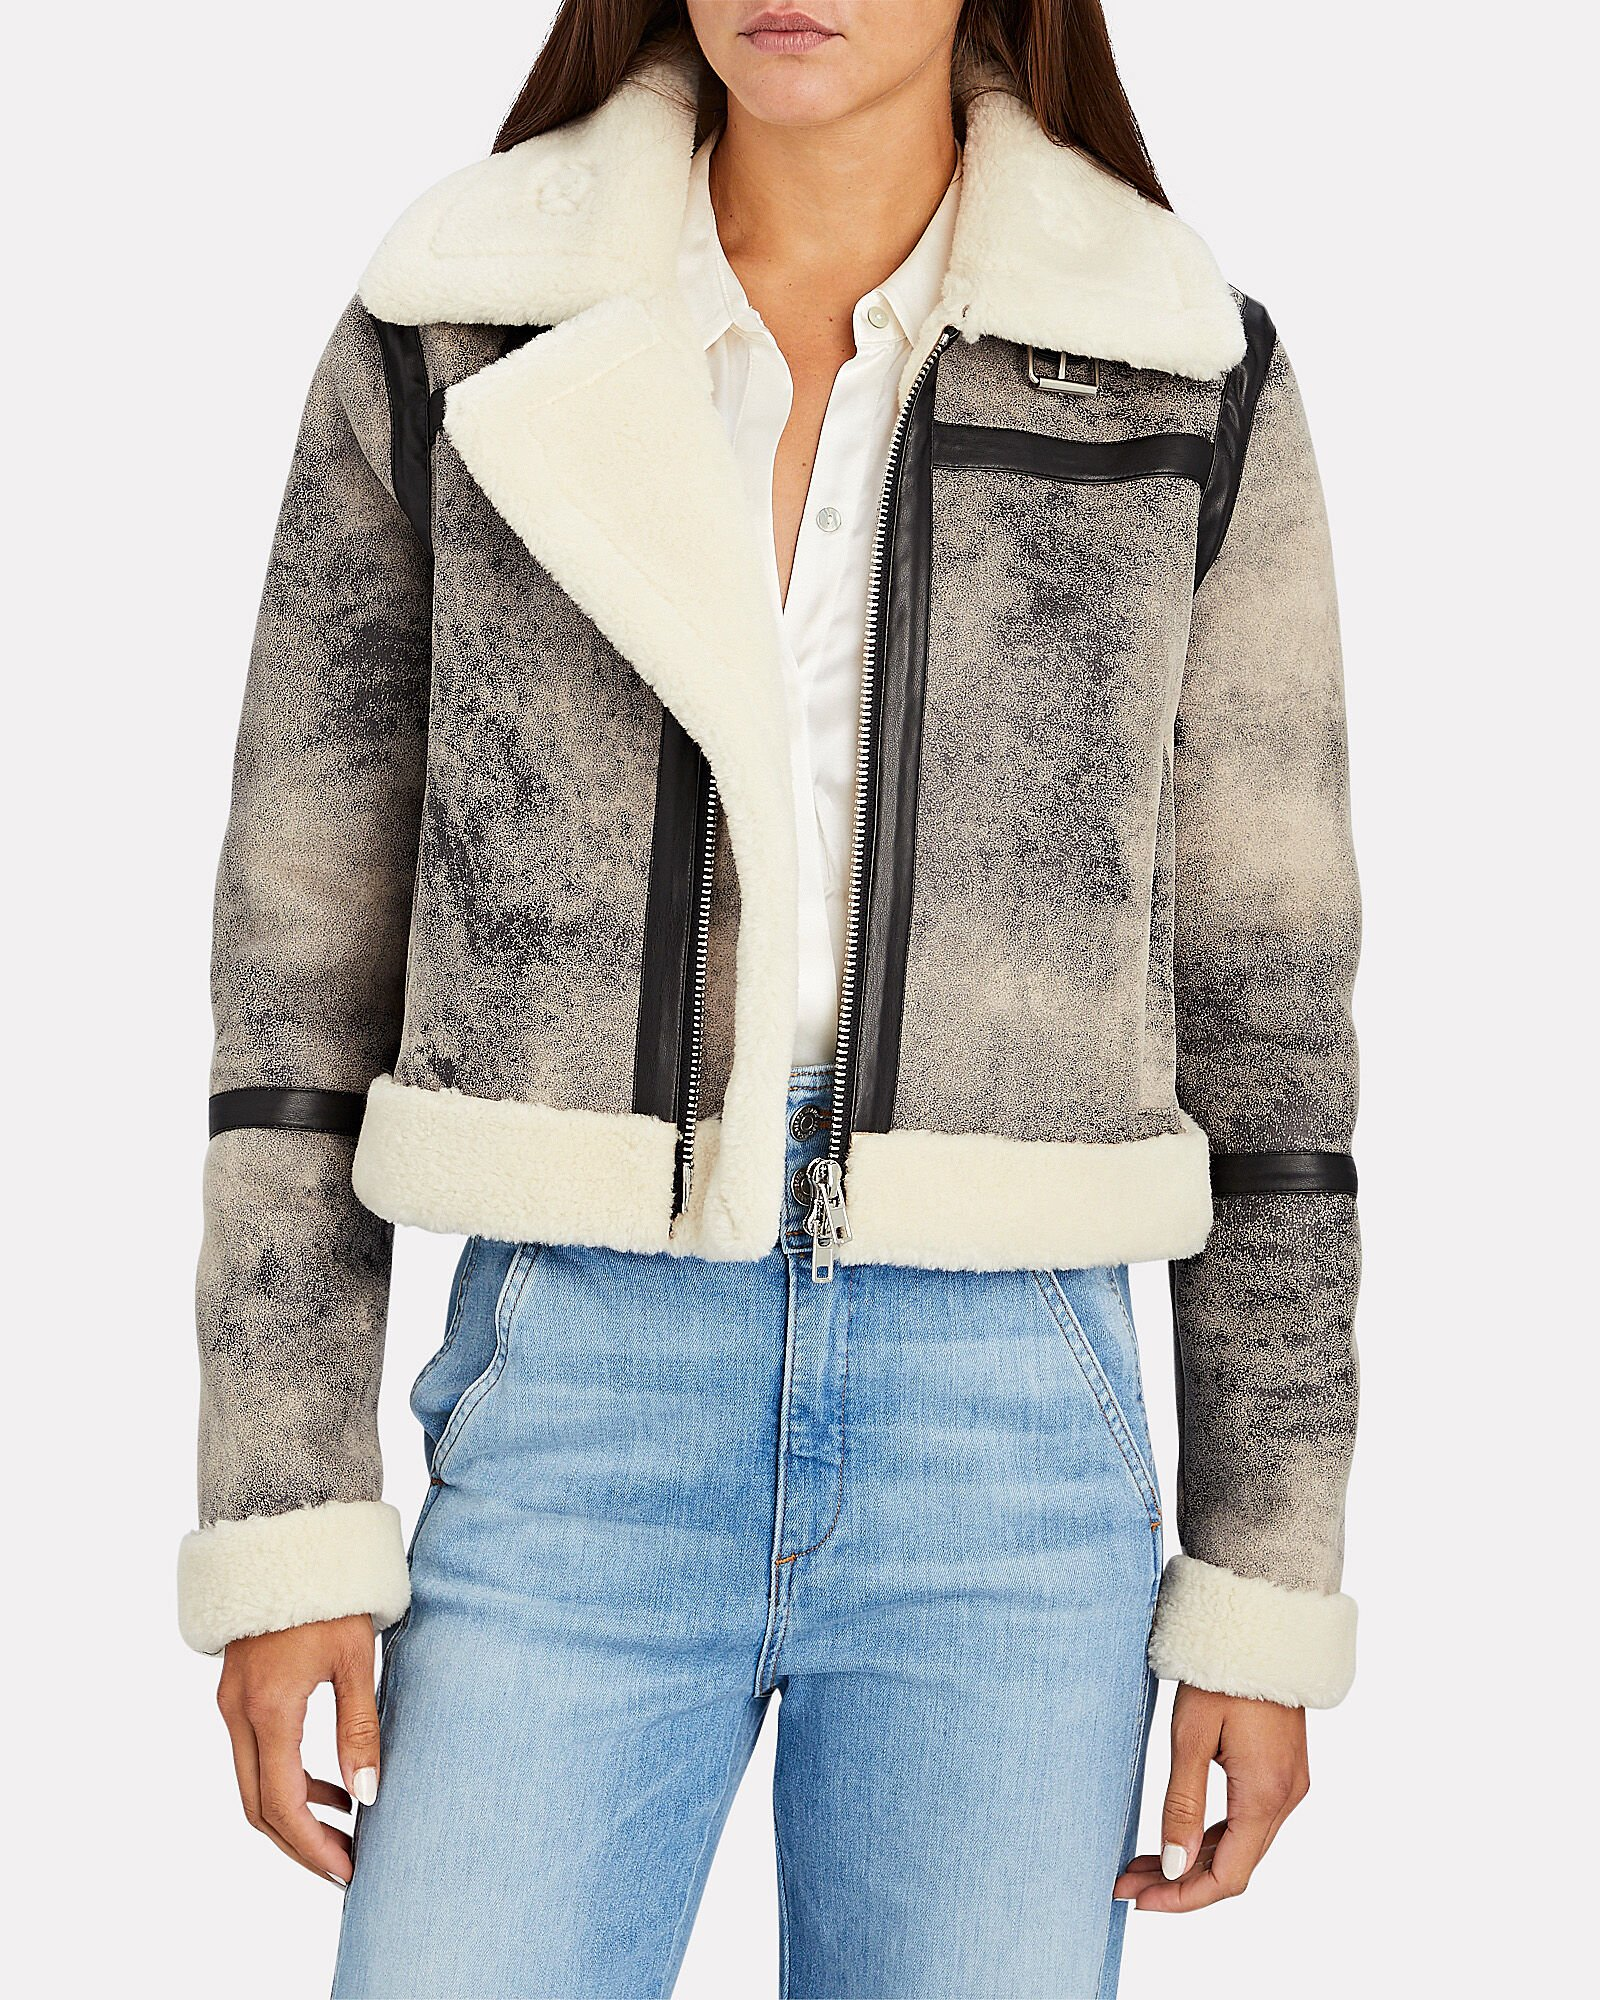 Lorelle Cropped Faux Shearling Jacket, GREY, hi-res